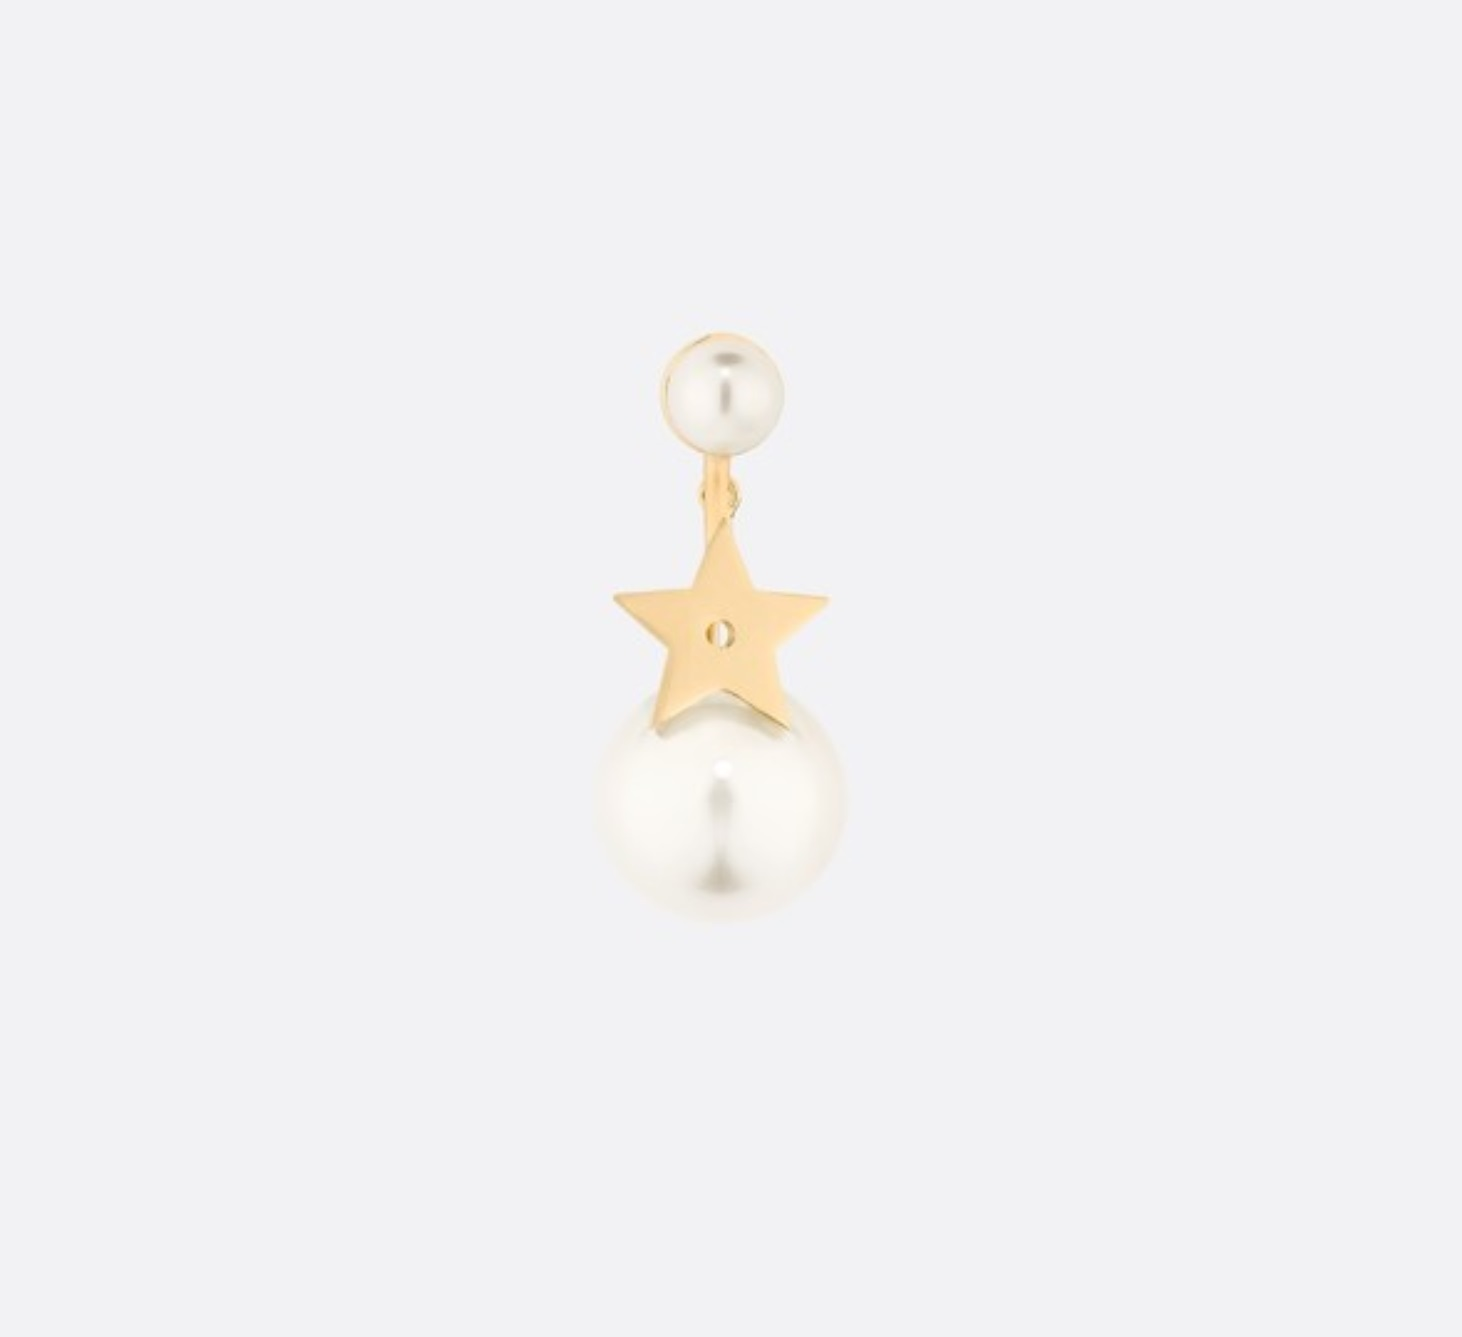 Authentic Christian Dior 2019 MY ABCDIOR TRIBALE EARRING STAR